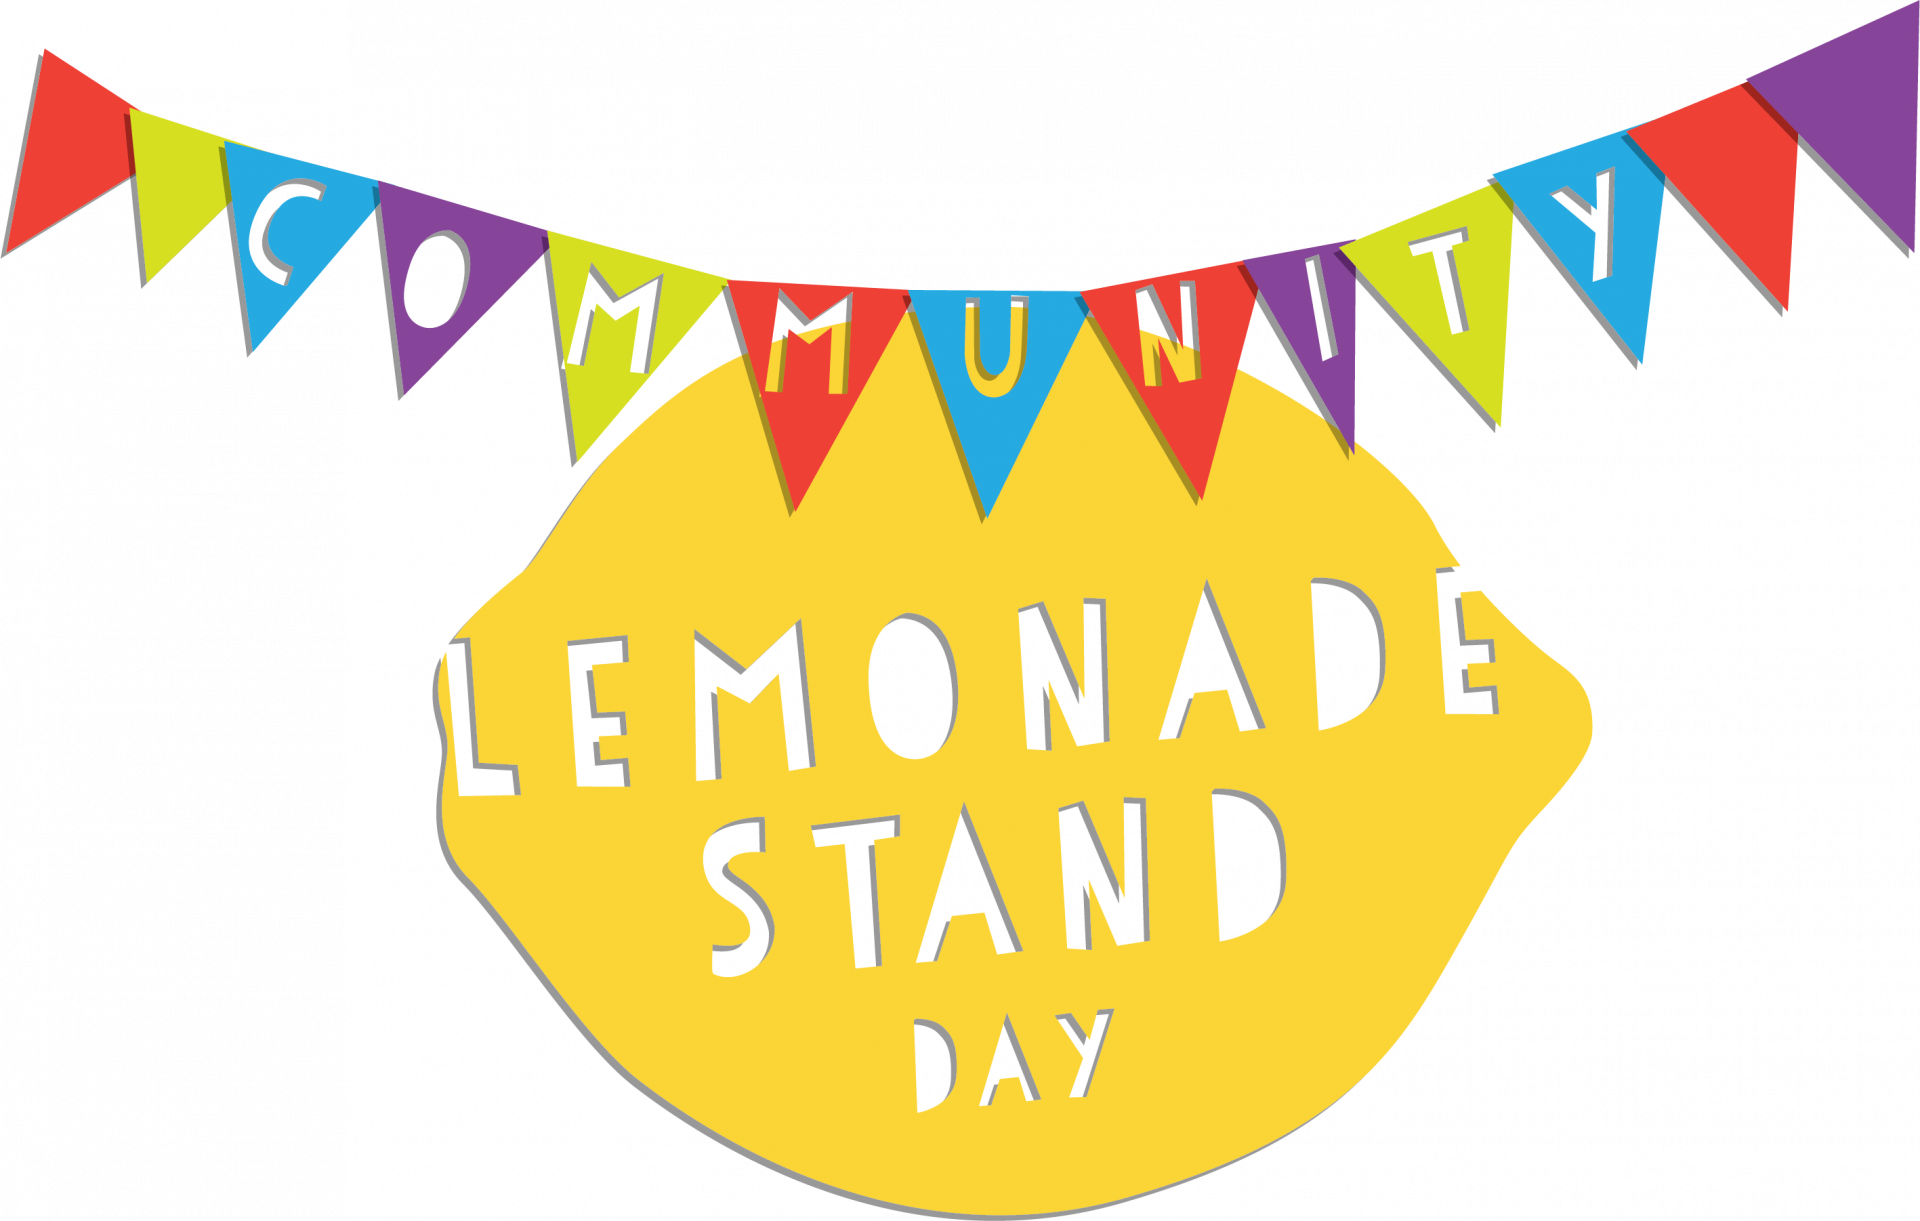 """Graphic of Lemon and Banner that reads """"Community Lemonade Stand Day"""""""